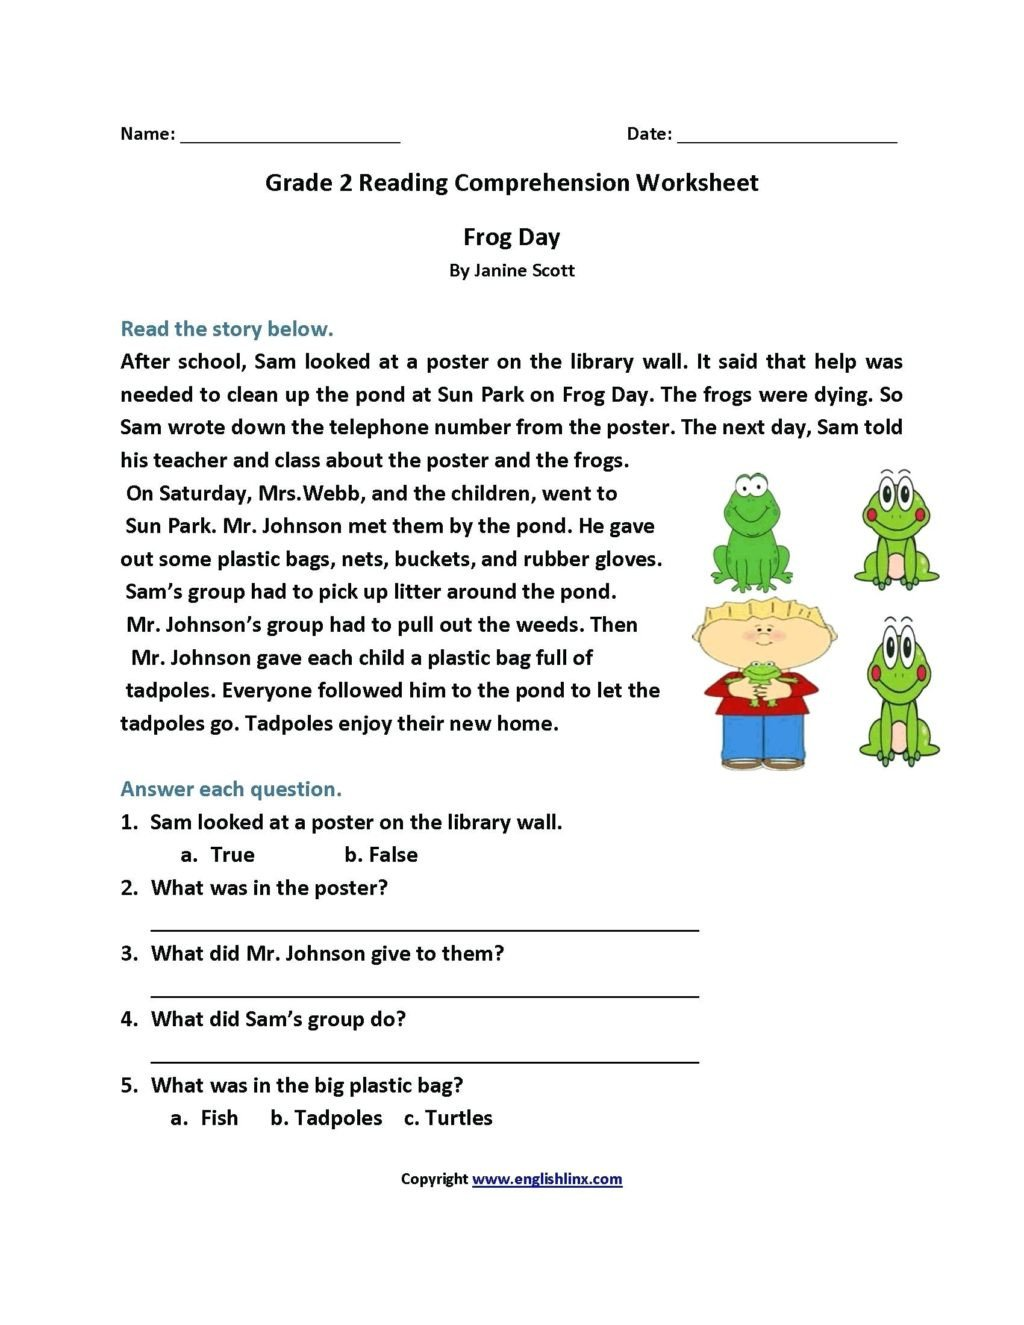 reading worskheets thanksgiving prehension worksheets worksheet year math high middle school first grade pdf 1st 6th 4th 3rd 1024x1325